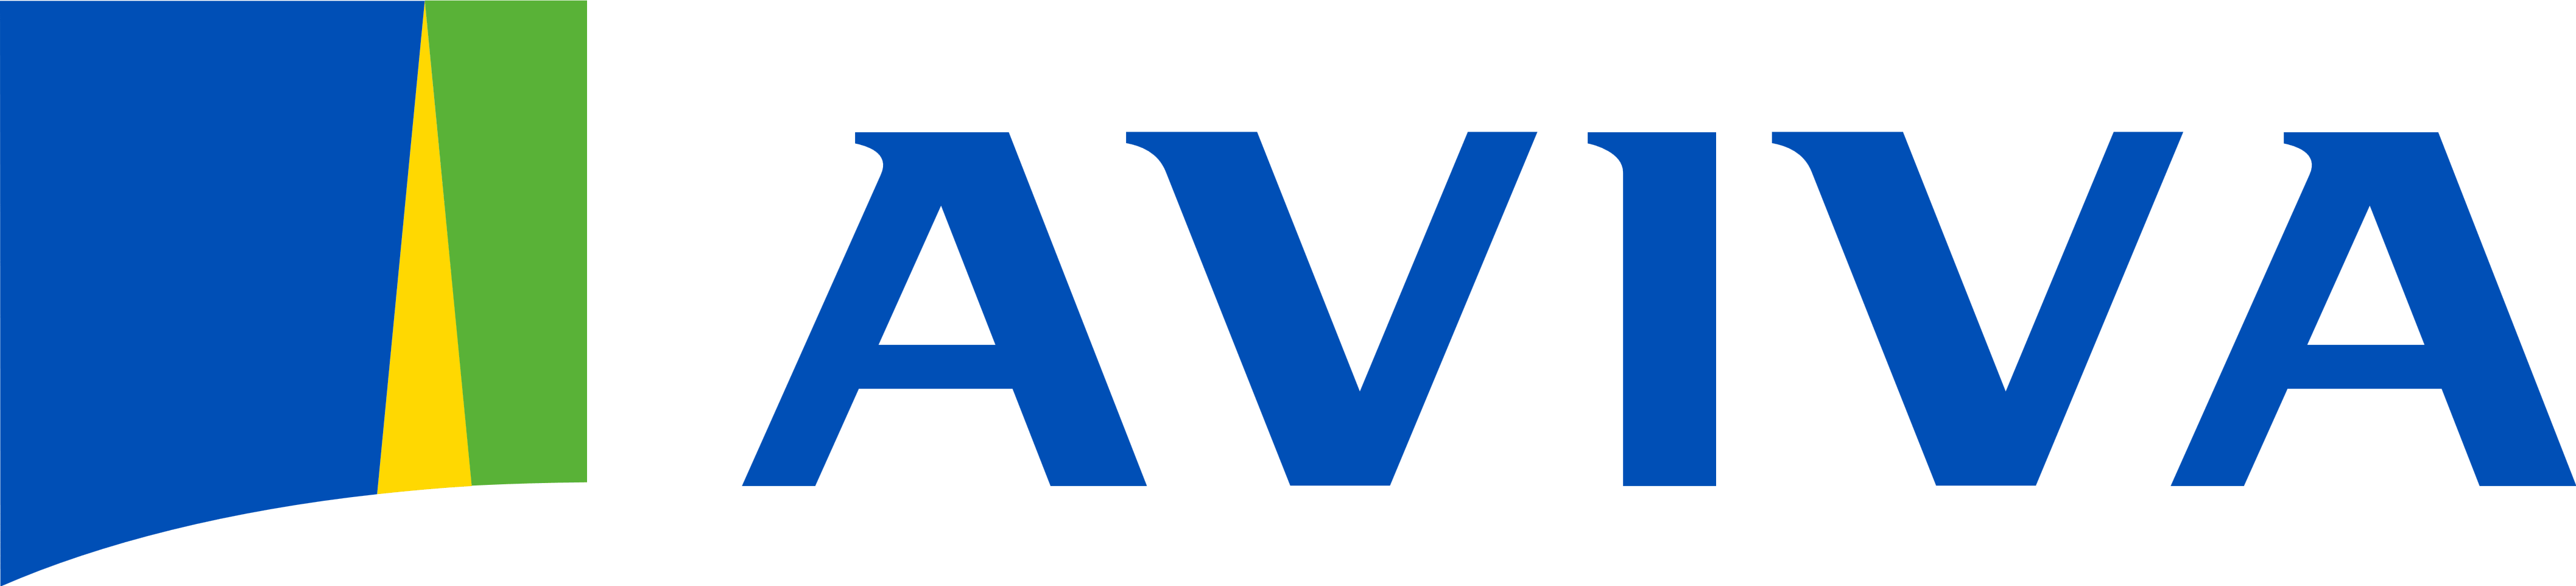 Chief Data Scientist, AVIVA